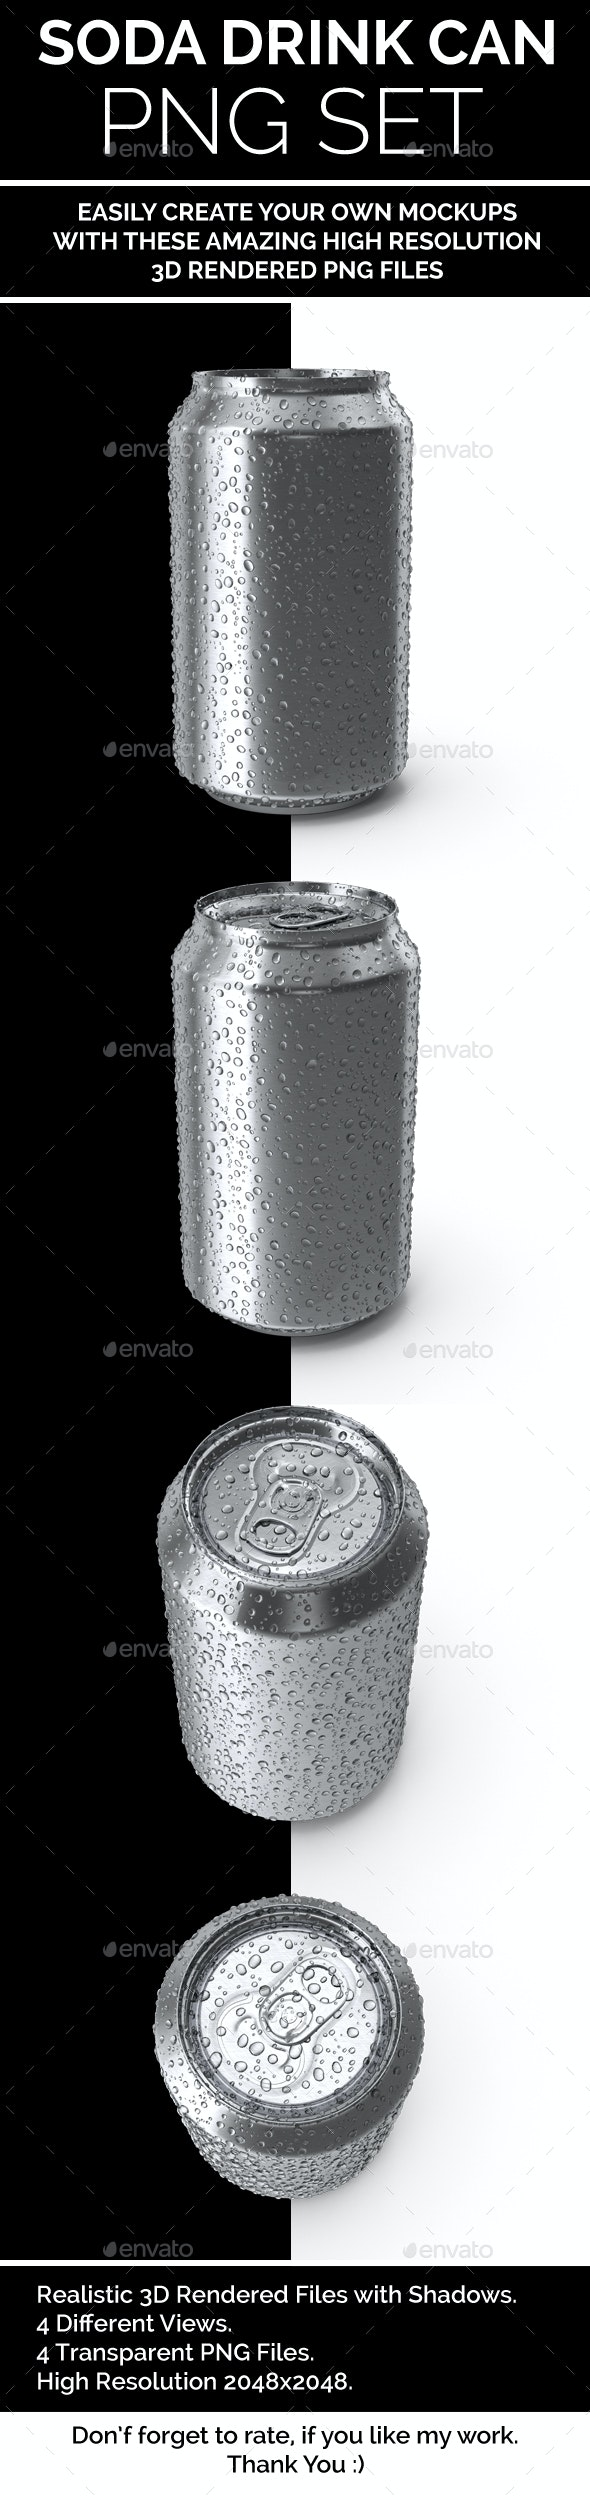 SODA Drink Can Isolated PNG Set 3D Rendered - Objects 3D Renders